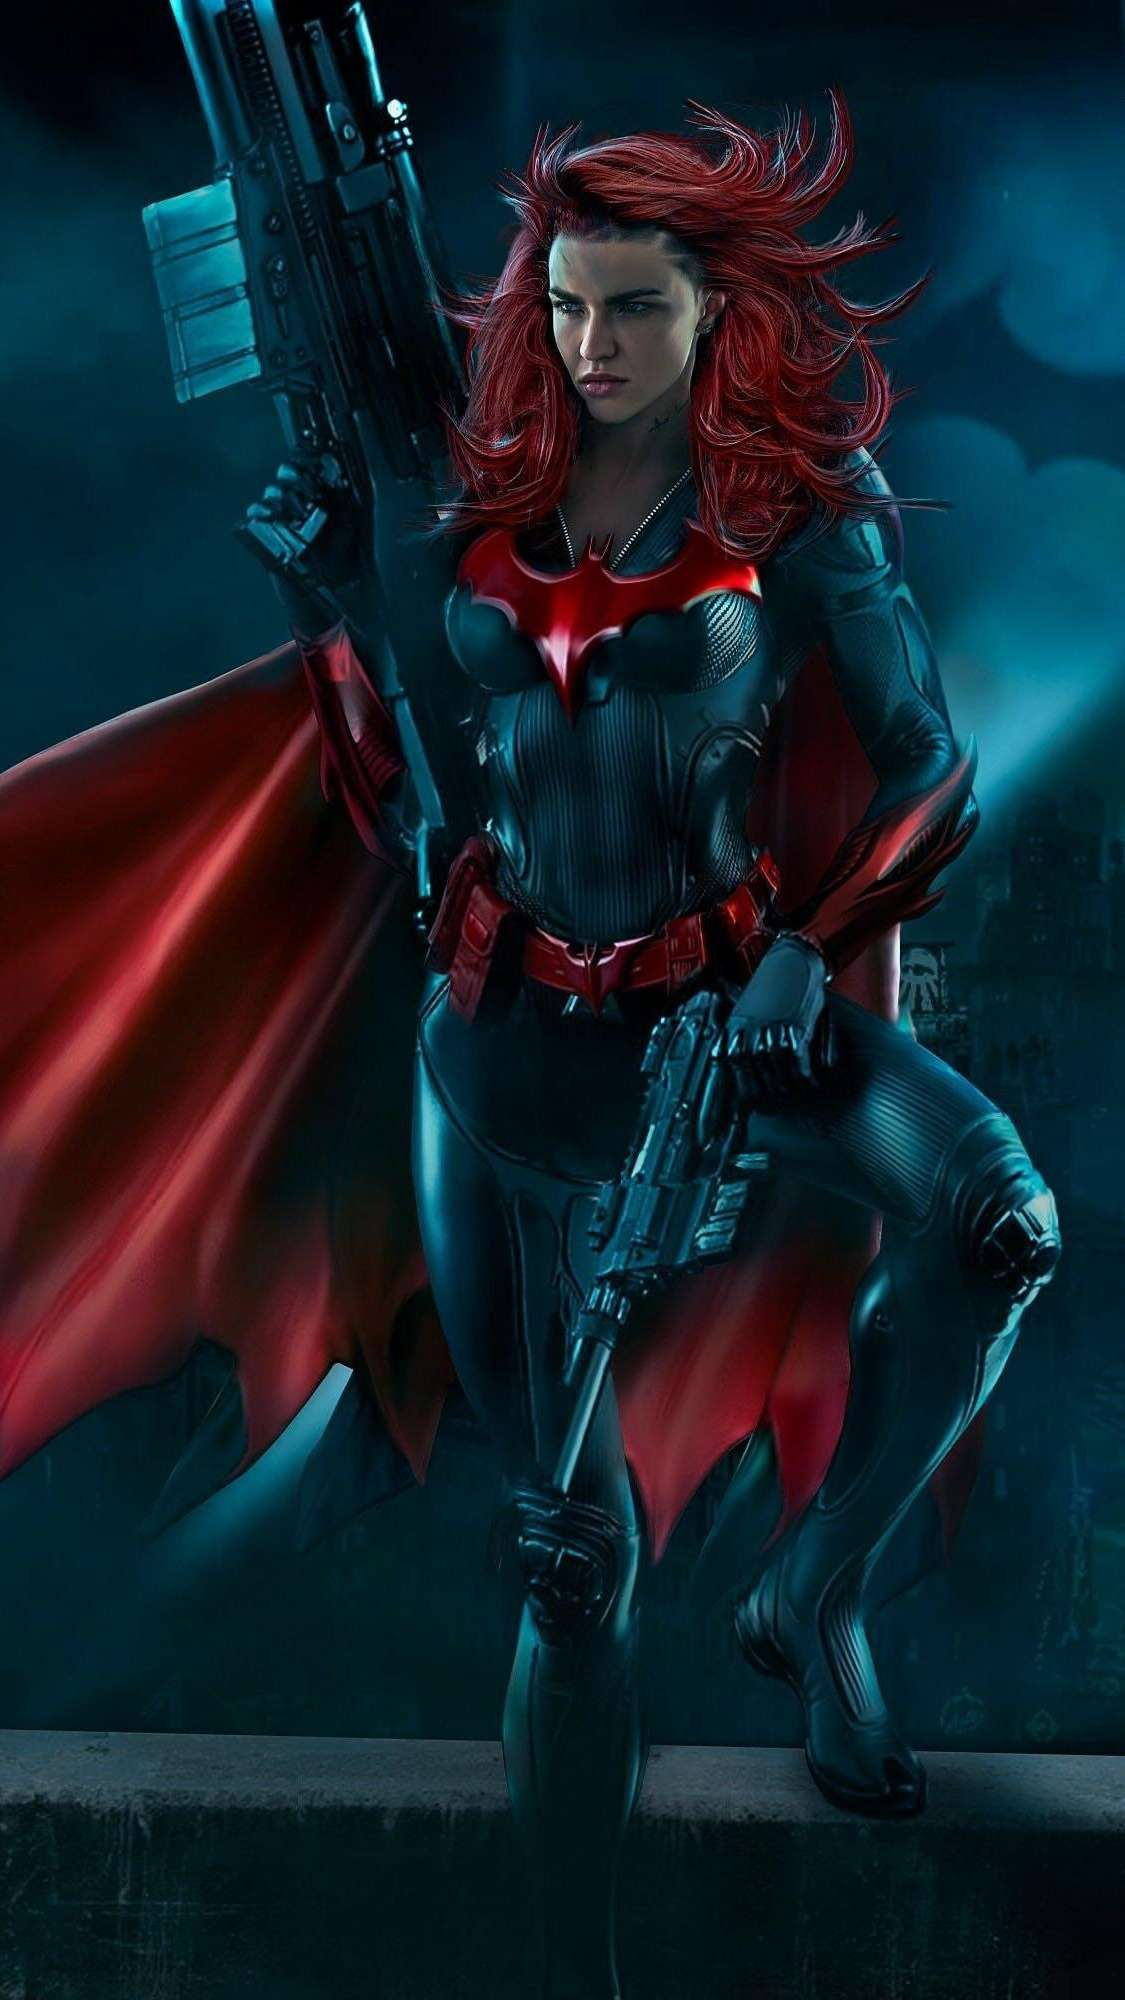 Download The Batwoman Wallpaper Top